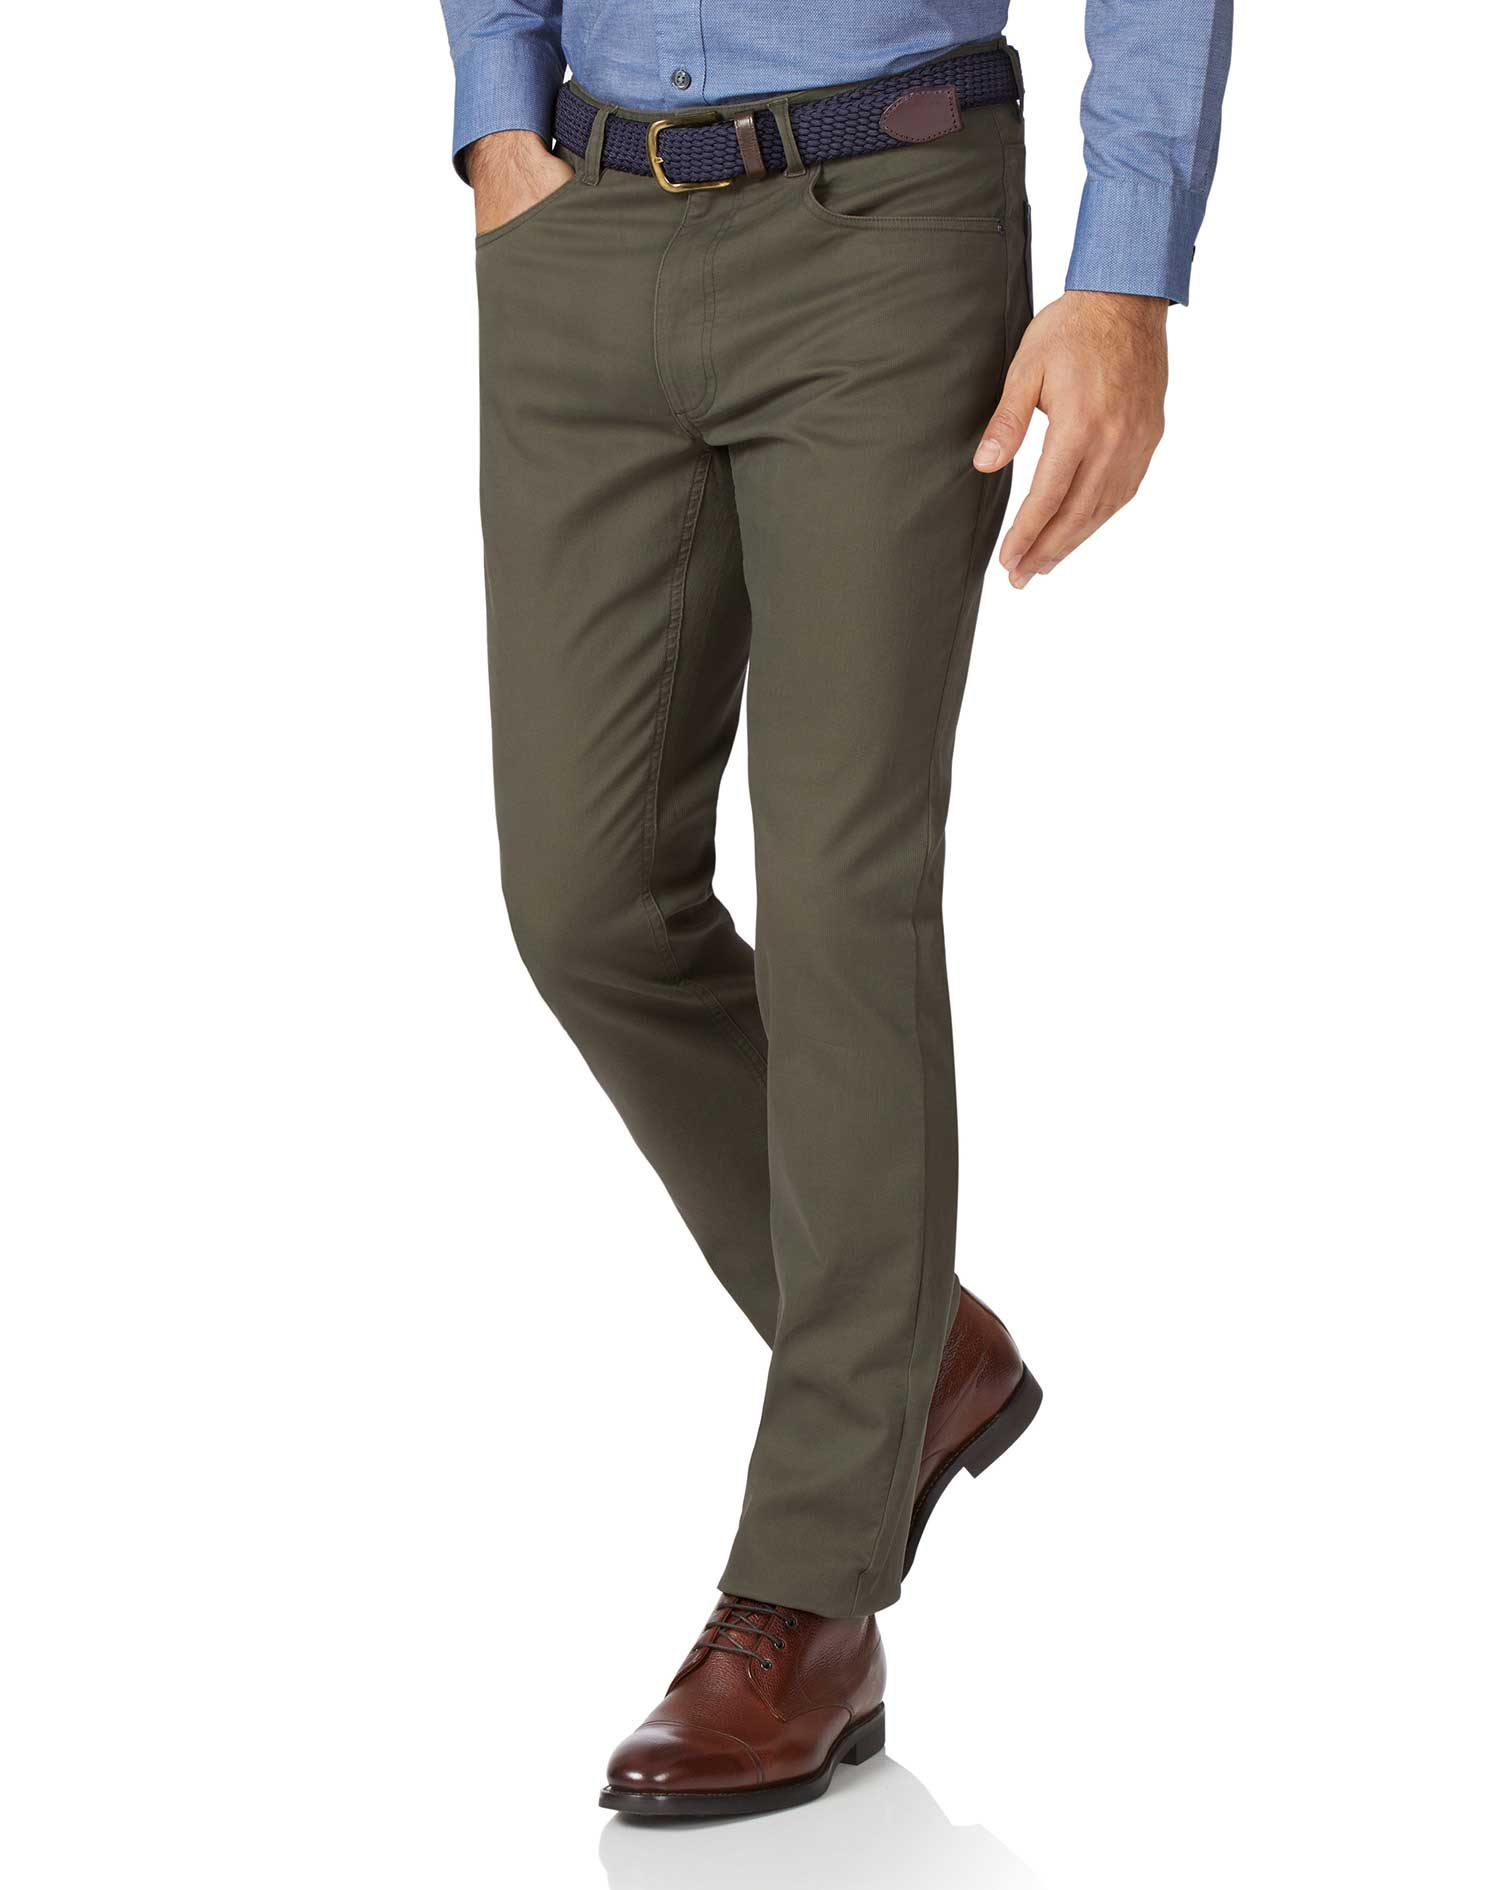 Olive Slim Fit 5 Pocket Bedford Corduroy Trousers Size W30 L30 by Charles Tyrwhitt from Charles Tyrwhitt